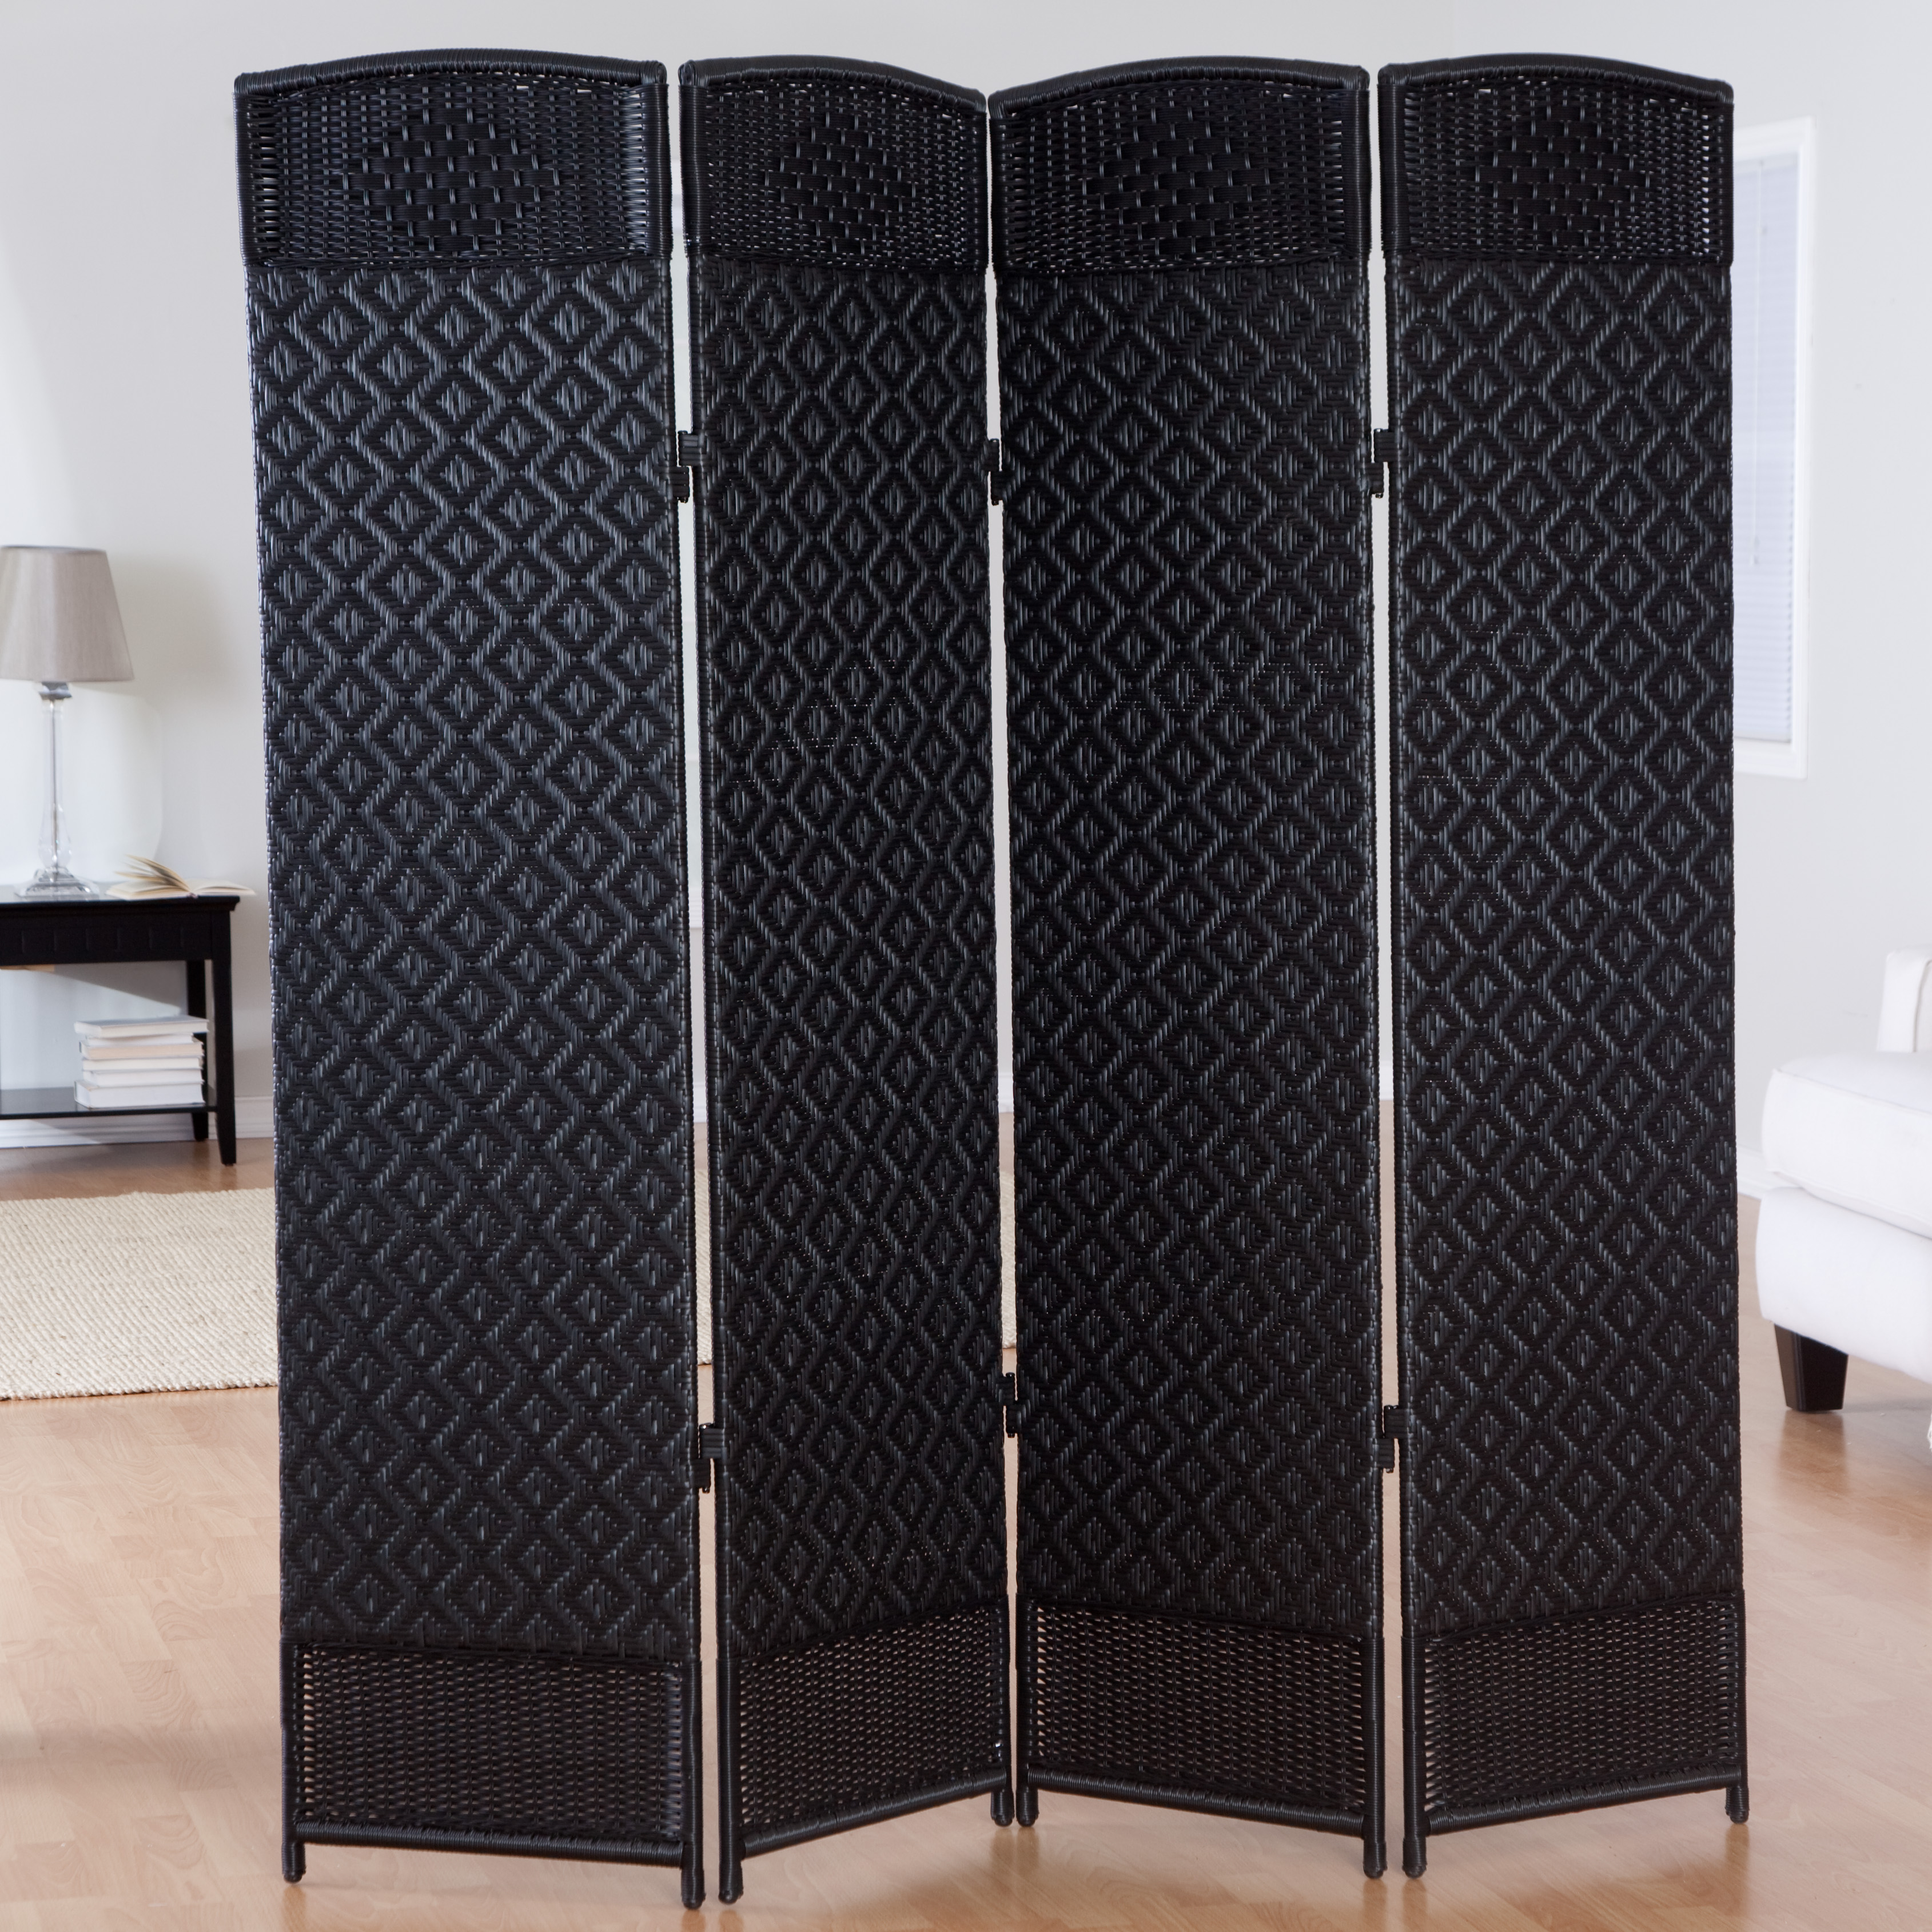 outdoor indoor woven resin 4 panel room divider outdoor privacy screens at hayneedle. Black Bedroom Furniture Sets. Home Design Ideas